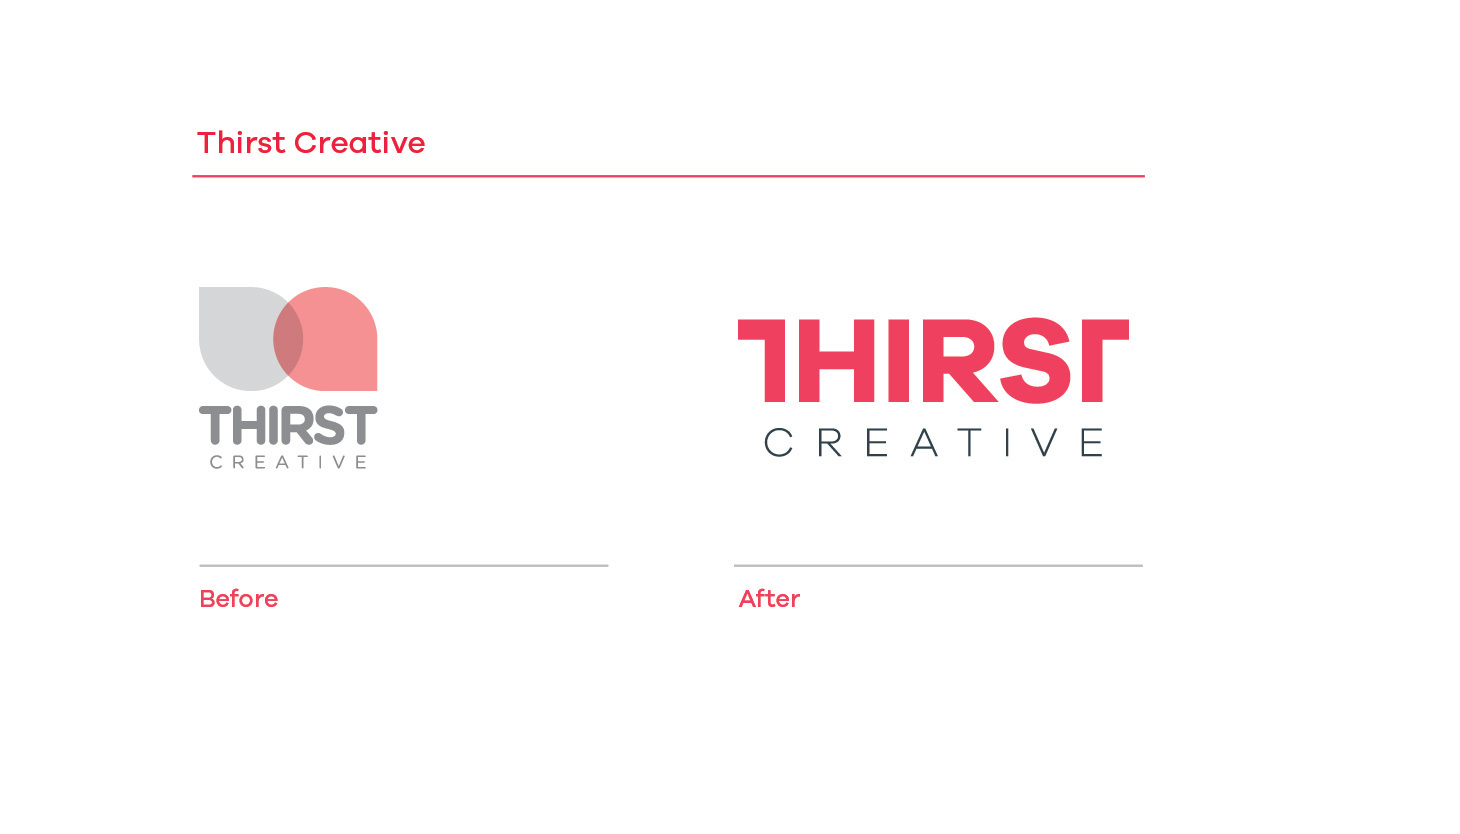 Thirst Creative before and after branding